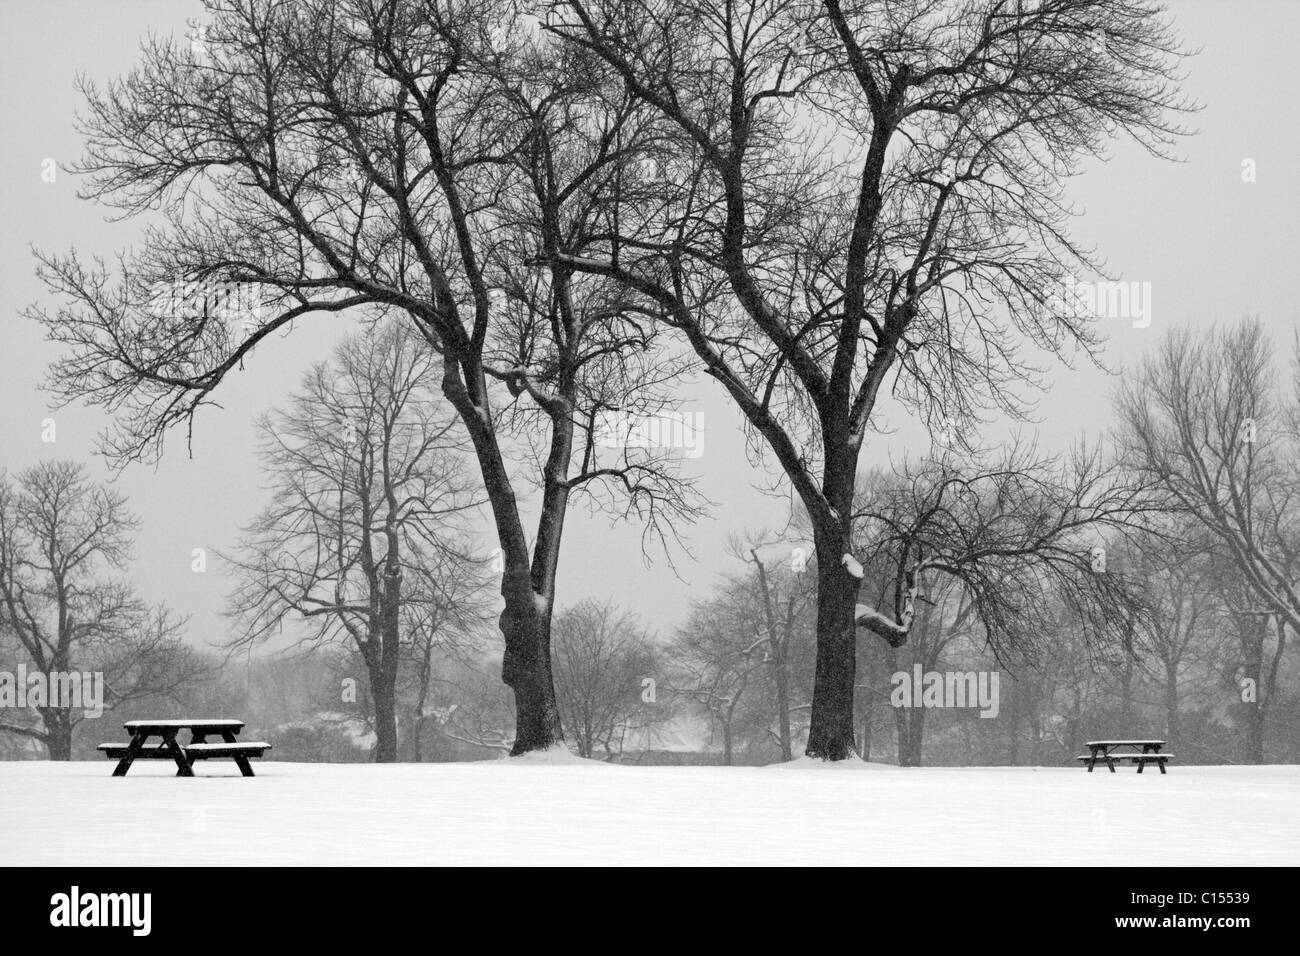 Two trees stand at attention during a winter snowstorm. - Stock Image